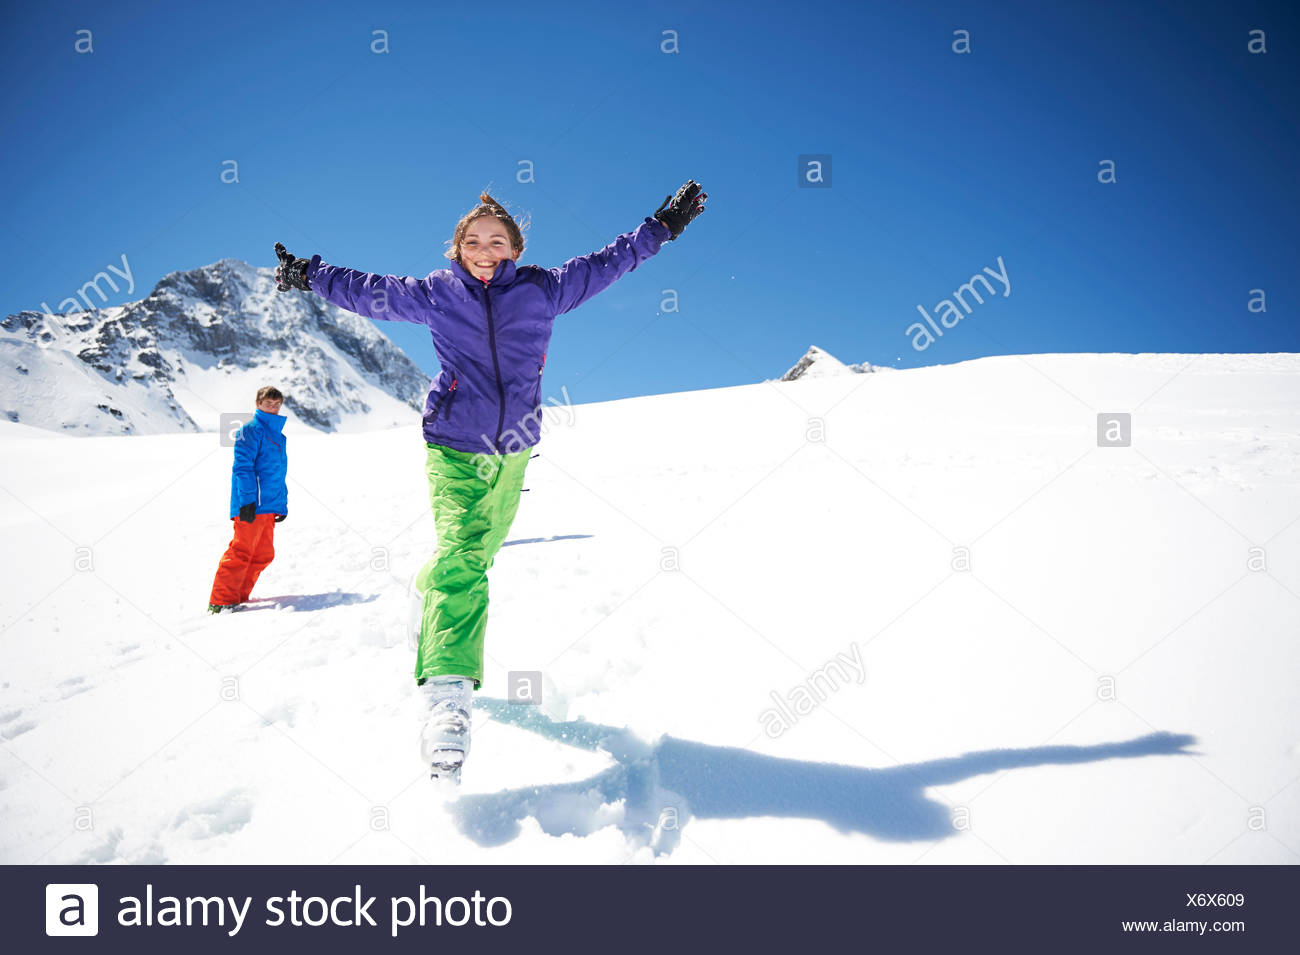 Teenager girl jumping in snow, arms outstretched - Stock Image